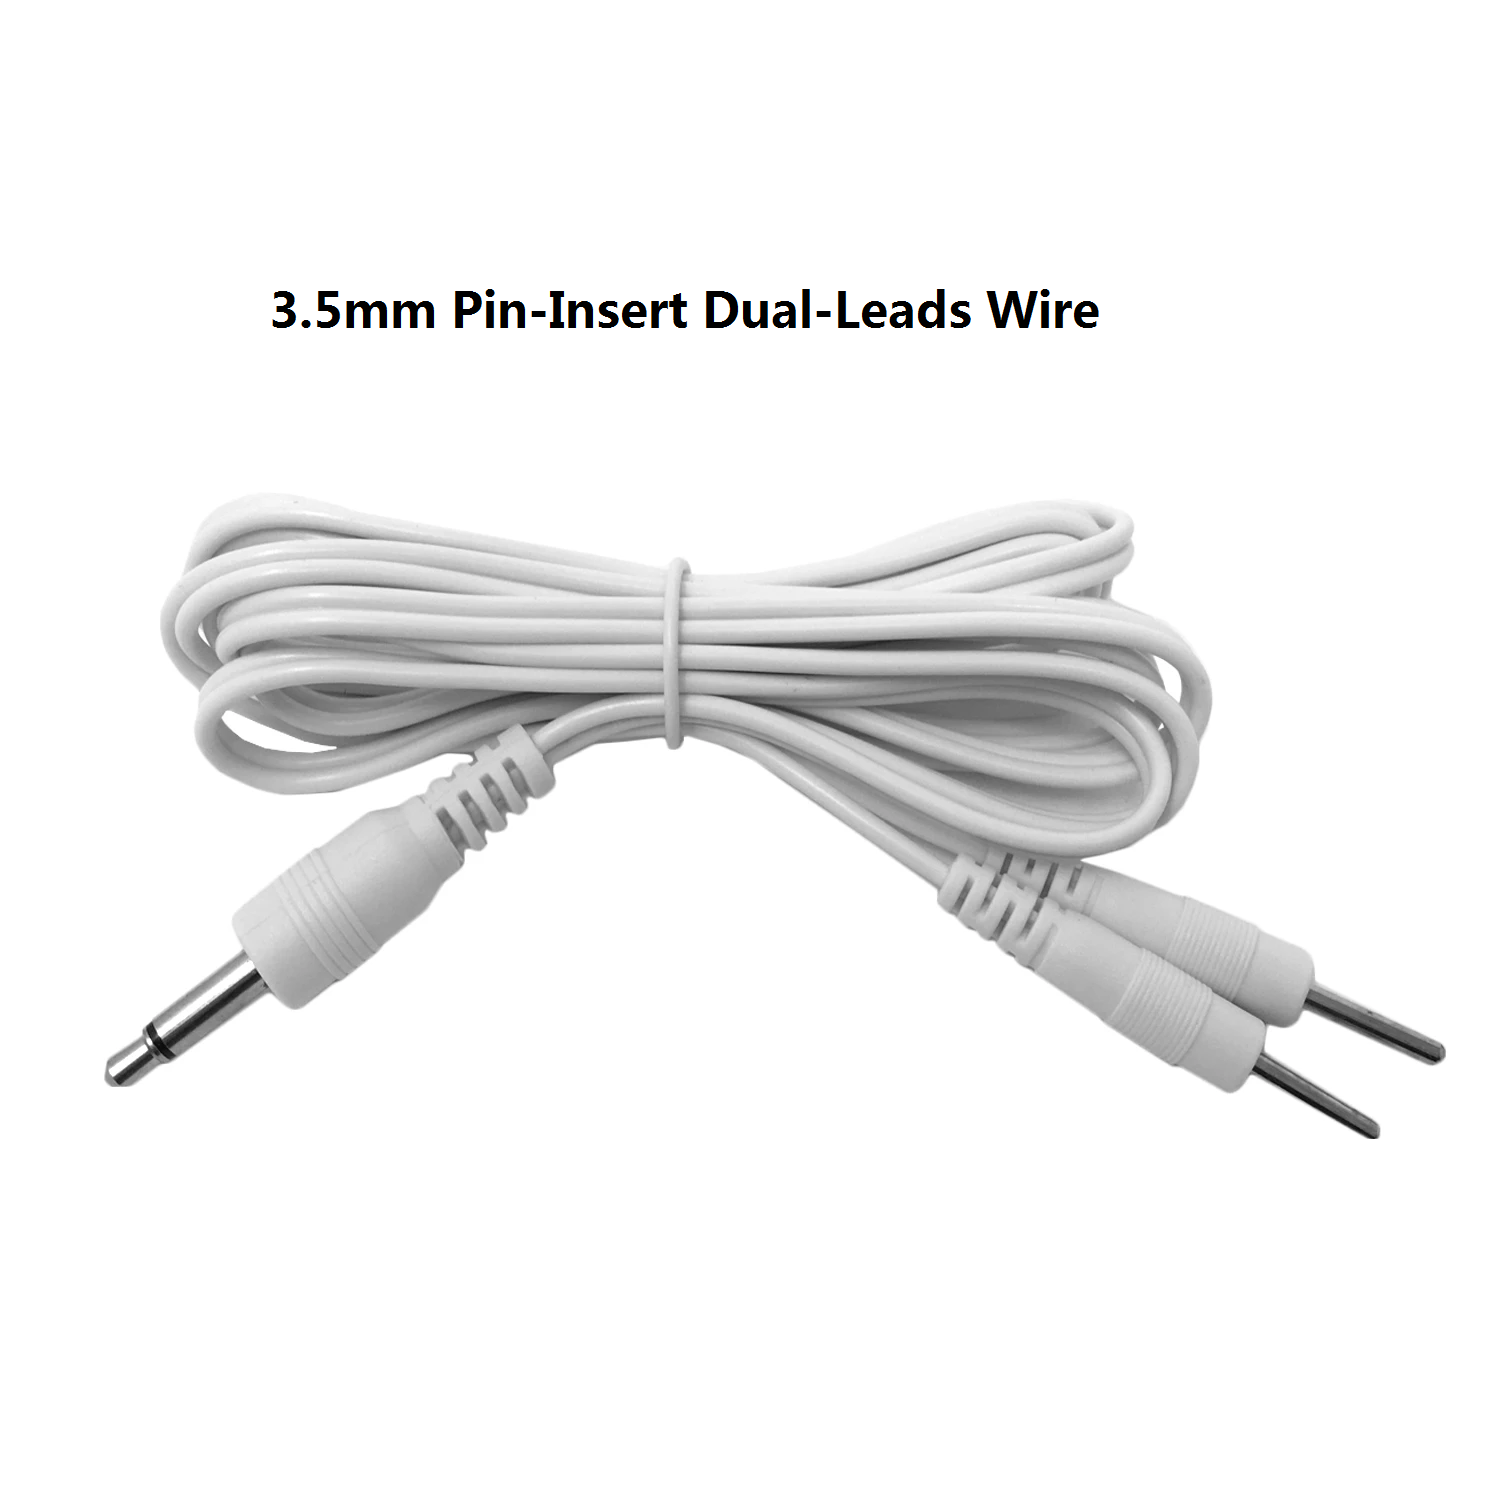 Pin-Insert Dual-Leads Wire - HealthmateForever